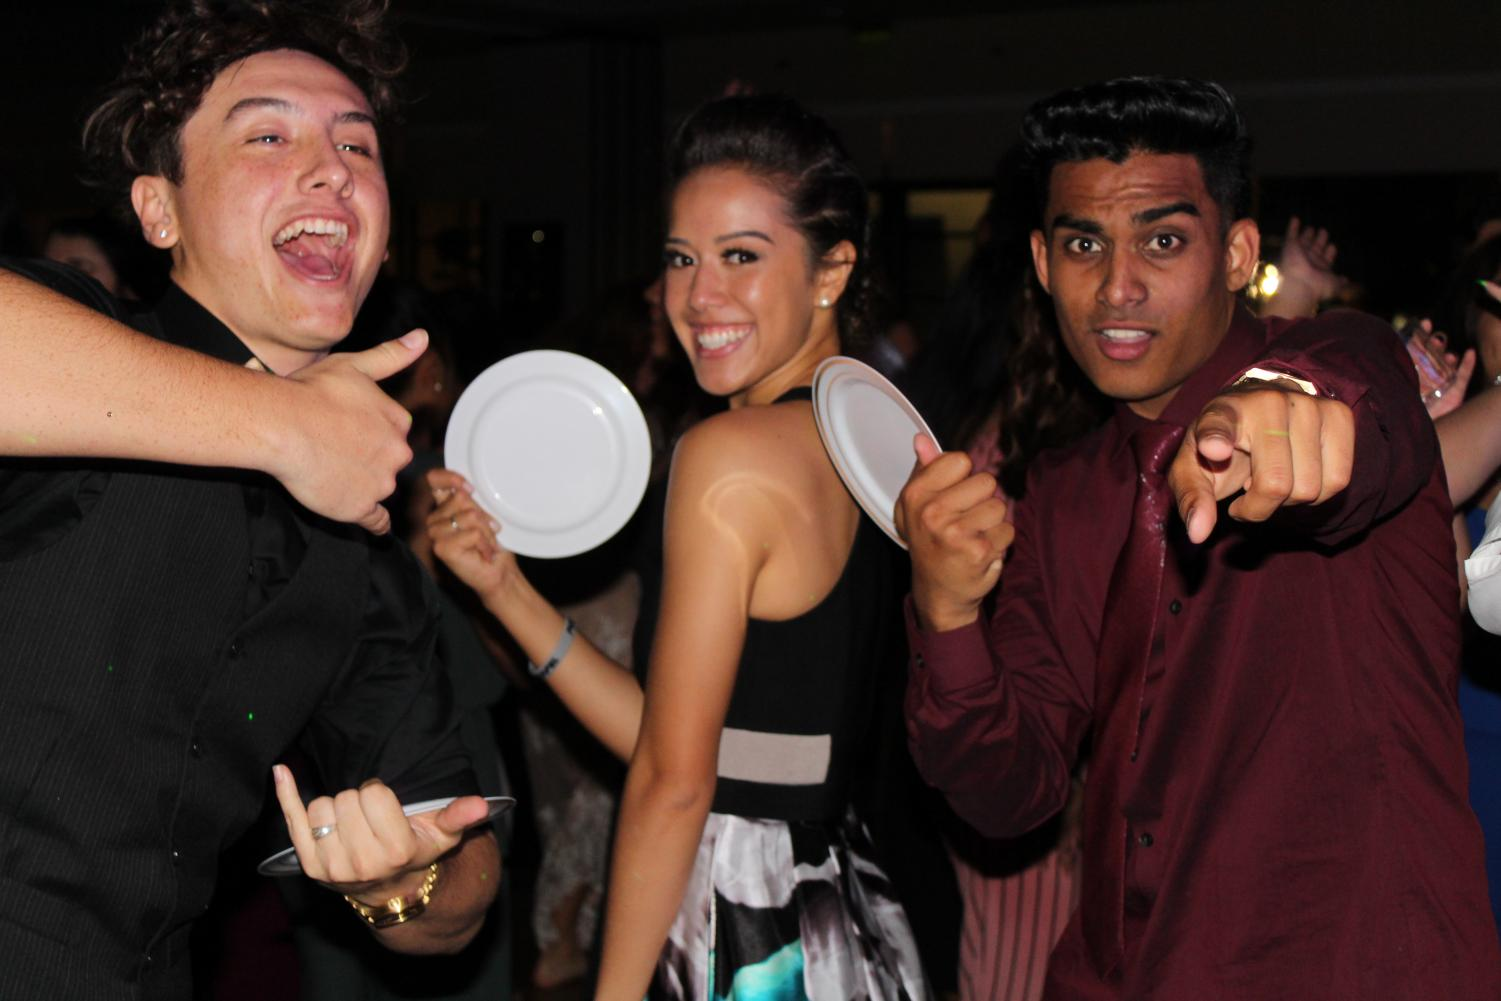 Quinn Warrington, Talia Leauanae, and Michael Singh turn their salad plates into fans as they dance their night away. Ka Papa Lama's senior ball was the school's first masquerade in several years and left students partying in the most glamorous way.